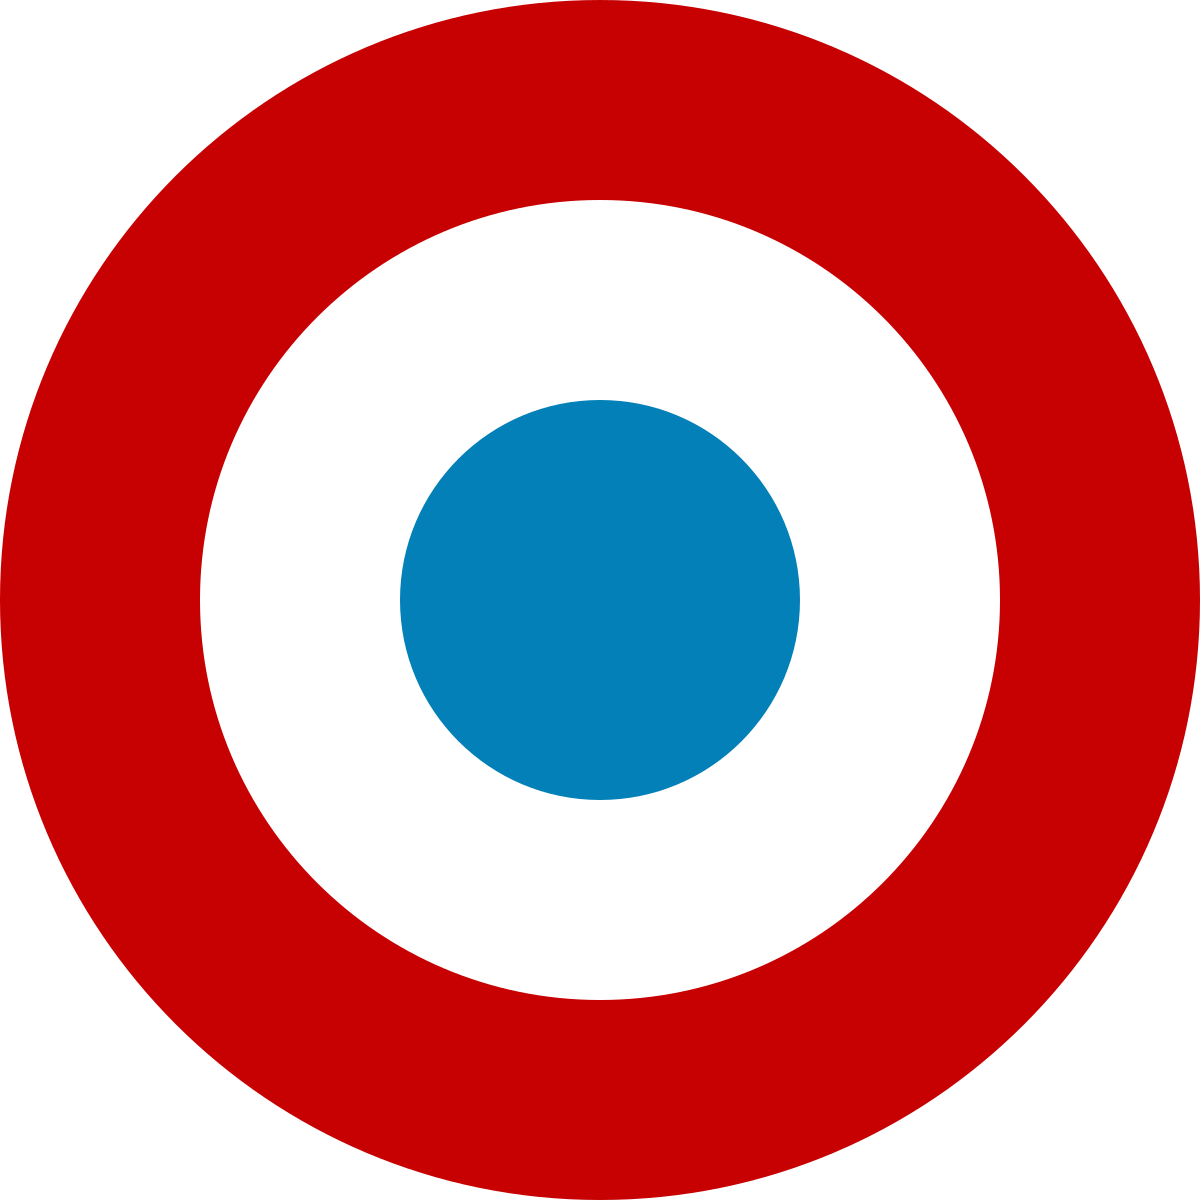 Roundel wikipedia . France clipart french item